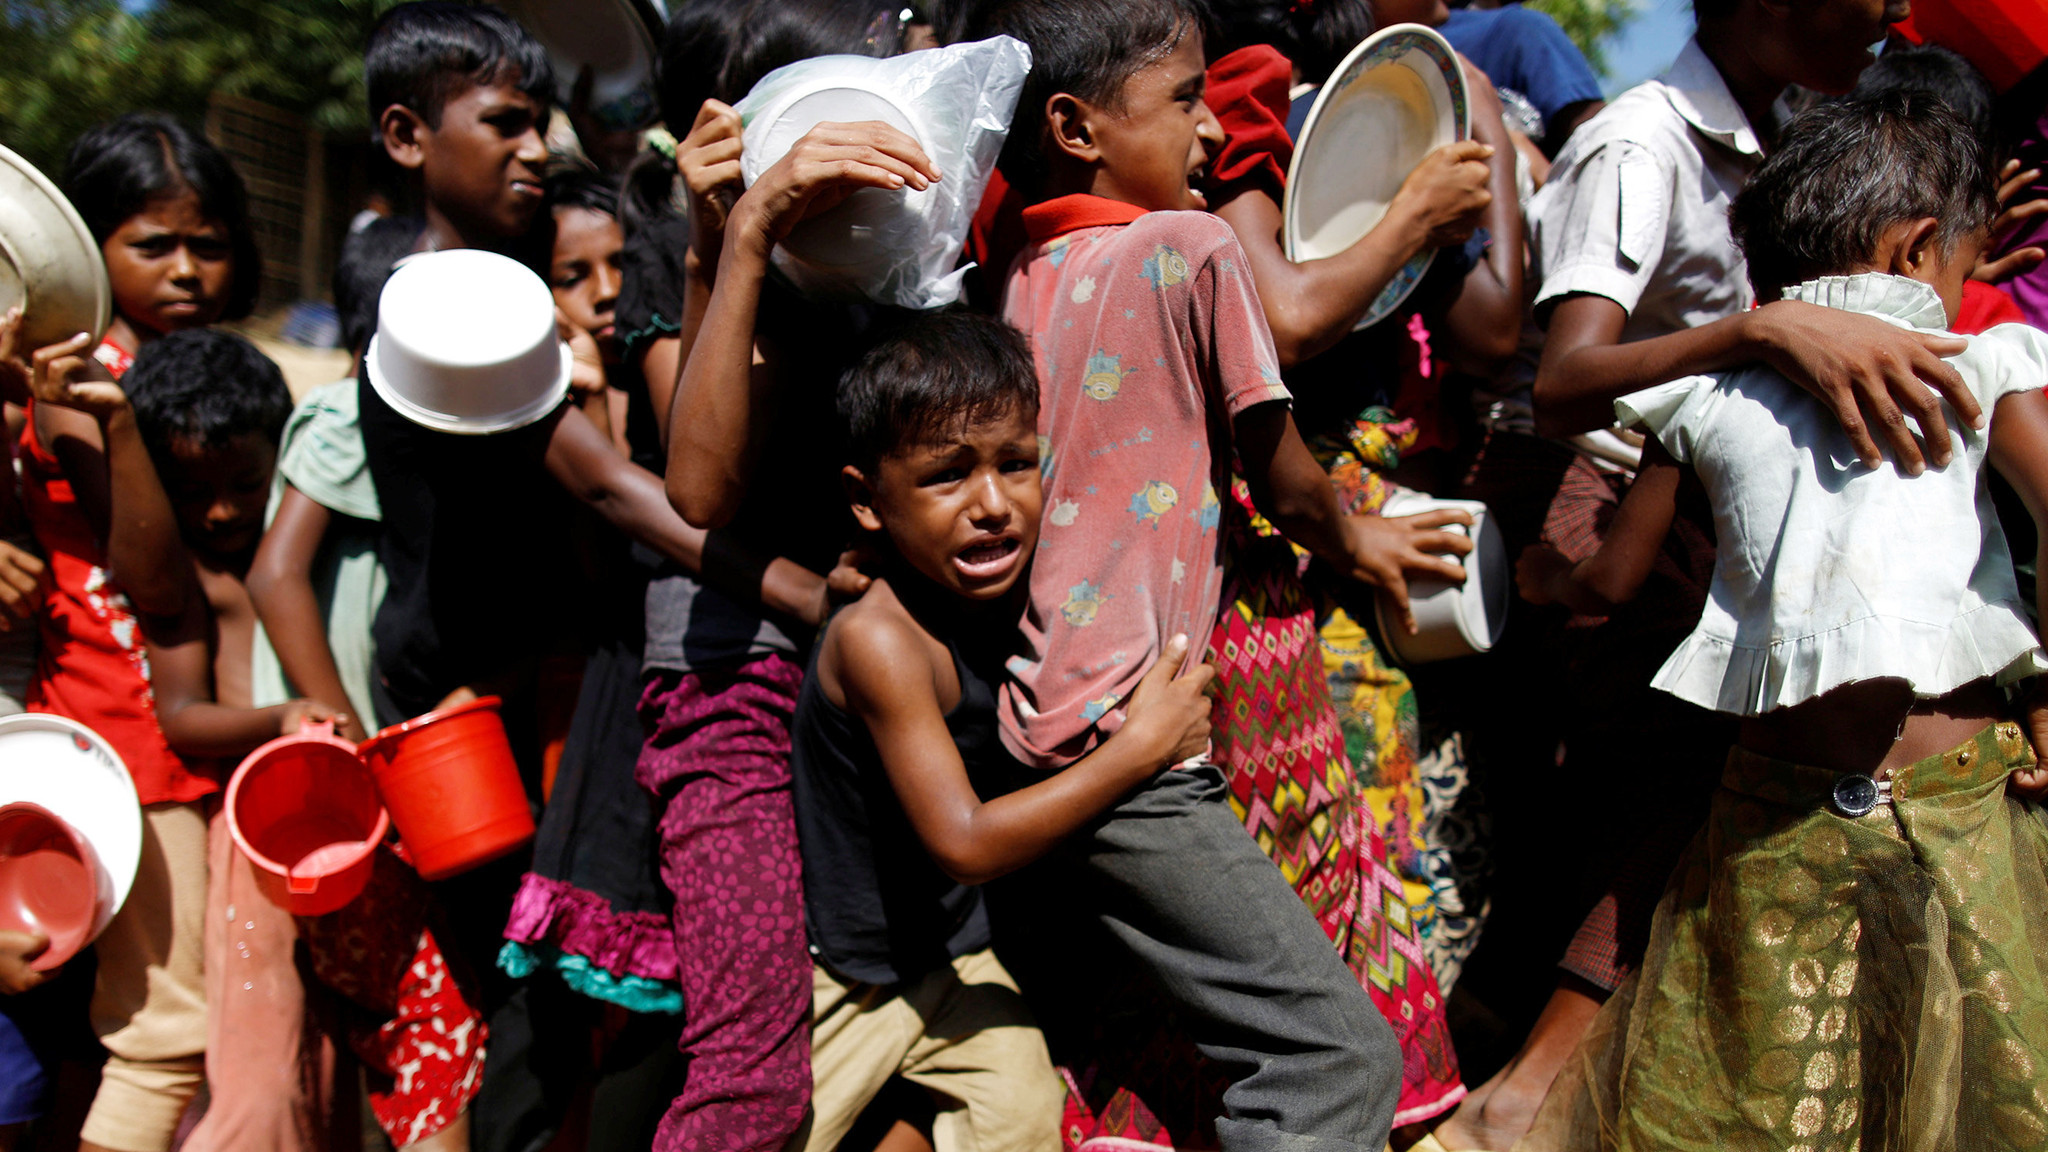 US calls attacks on Rohingya 'ethnic cleansing'